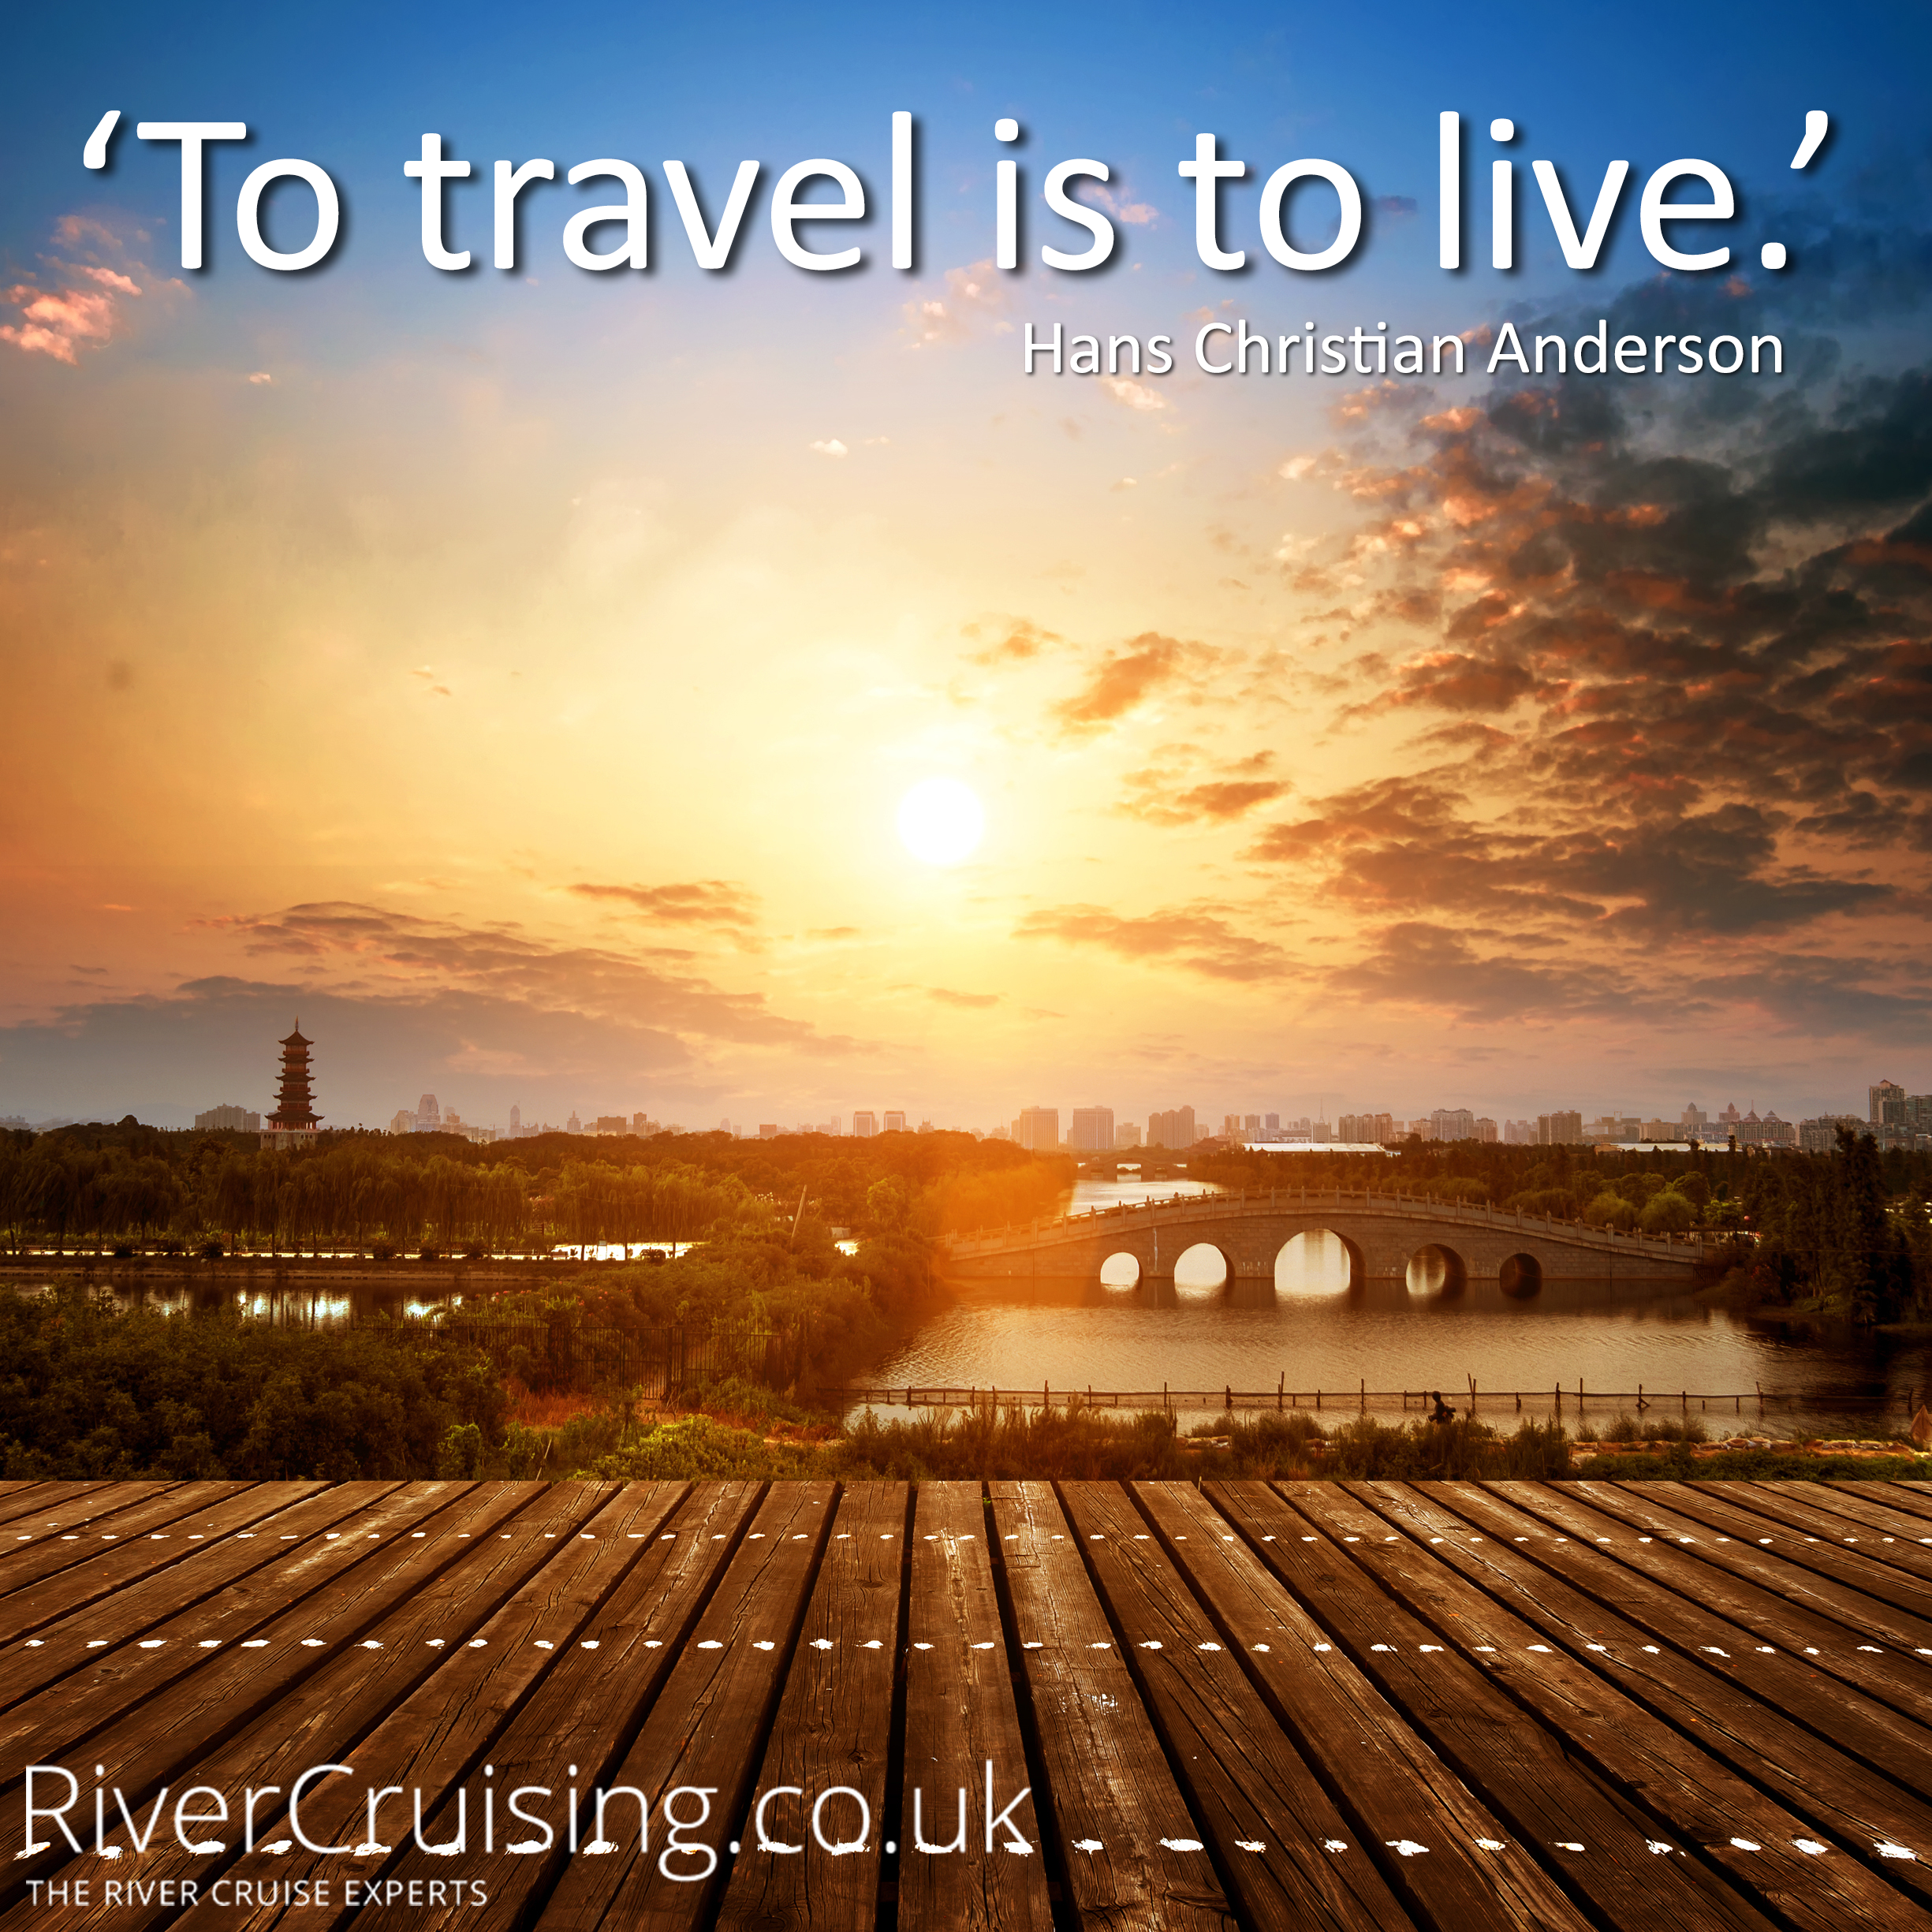 To travel is to live. #travel #quote #explore #discover #travelling #holiday